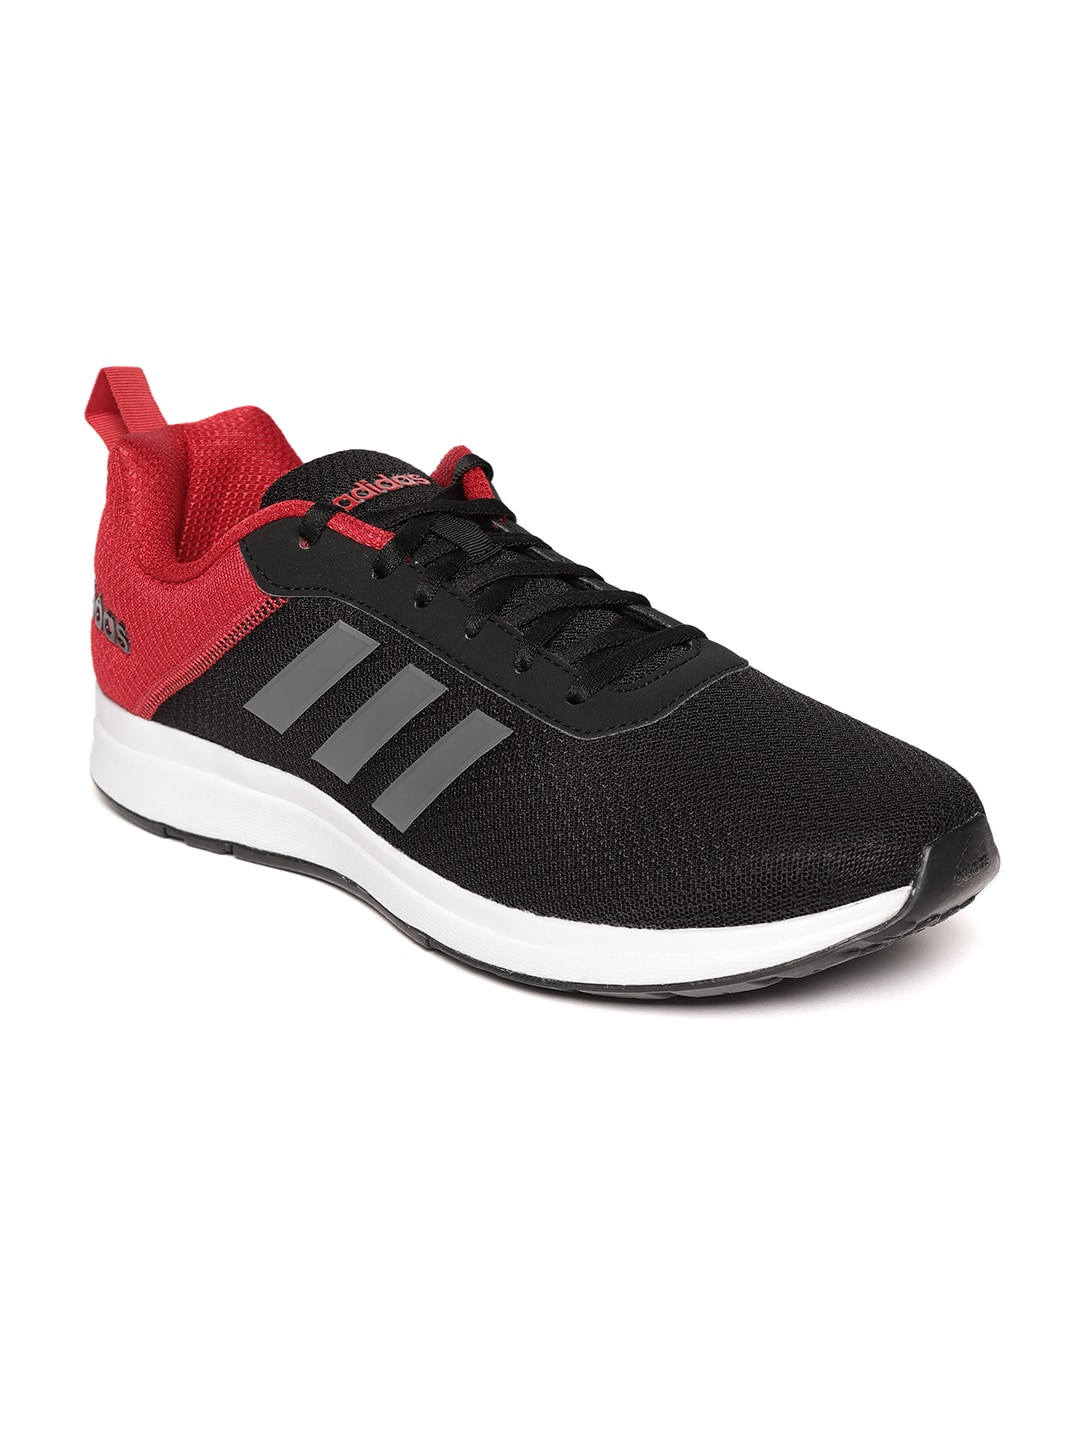 lowest price 6ac6e 99169 Adidas Mesh Sports Shoes - Buy Adidas Mesh Sports Shoes onli